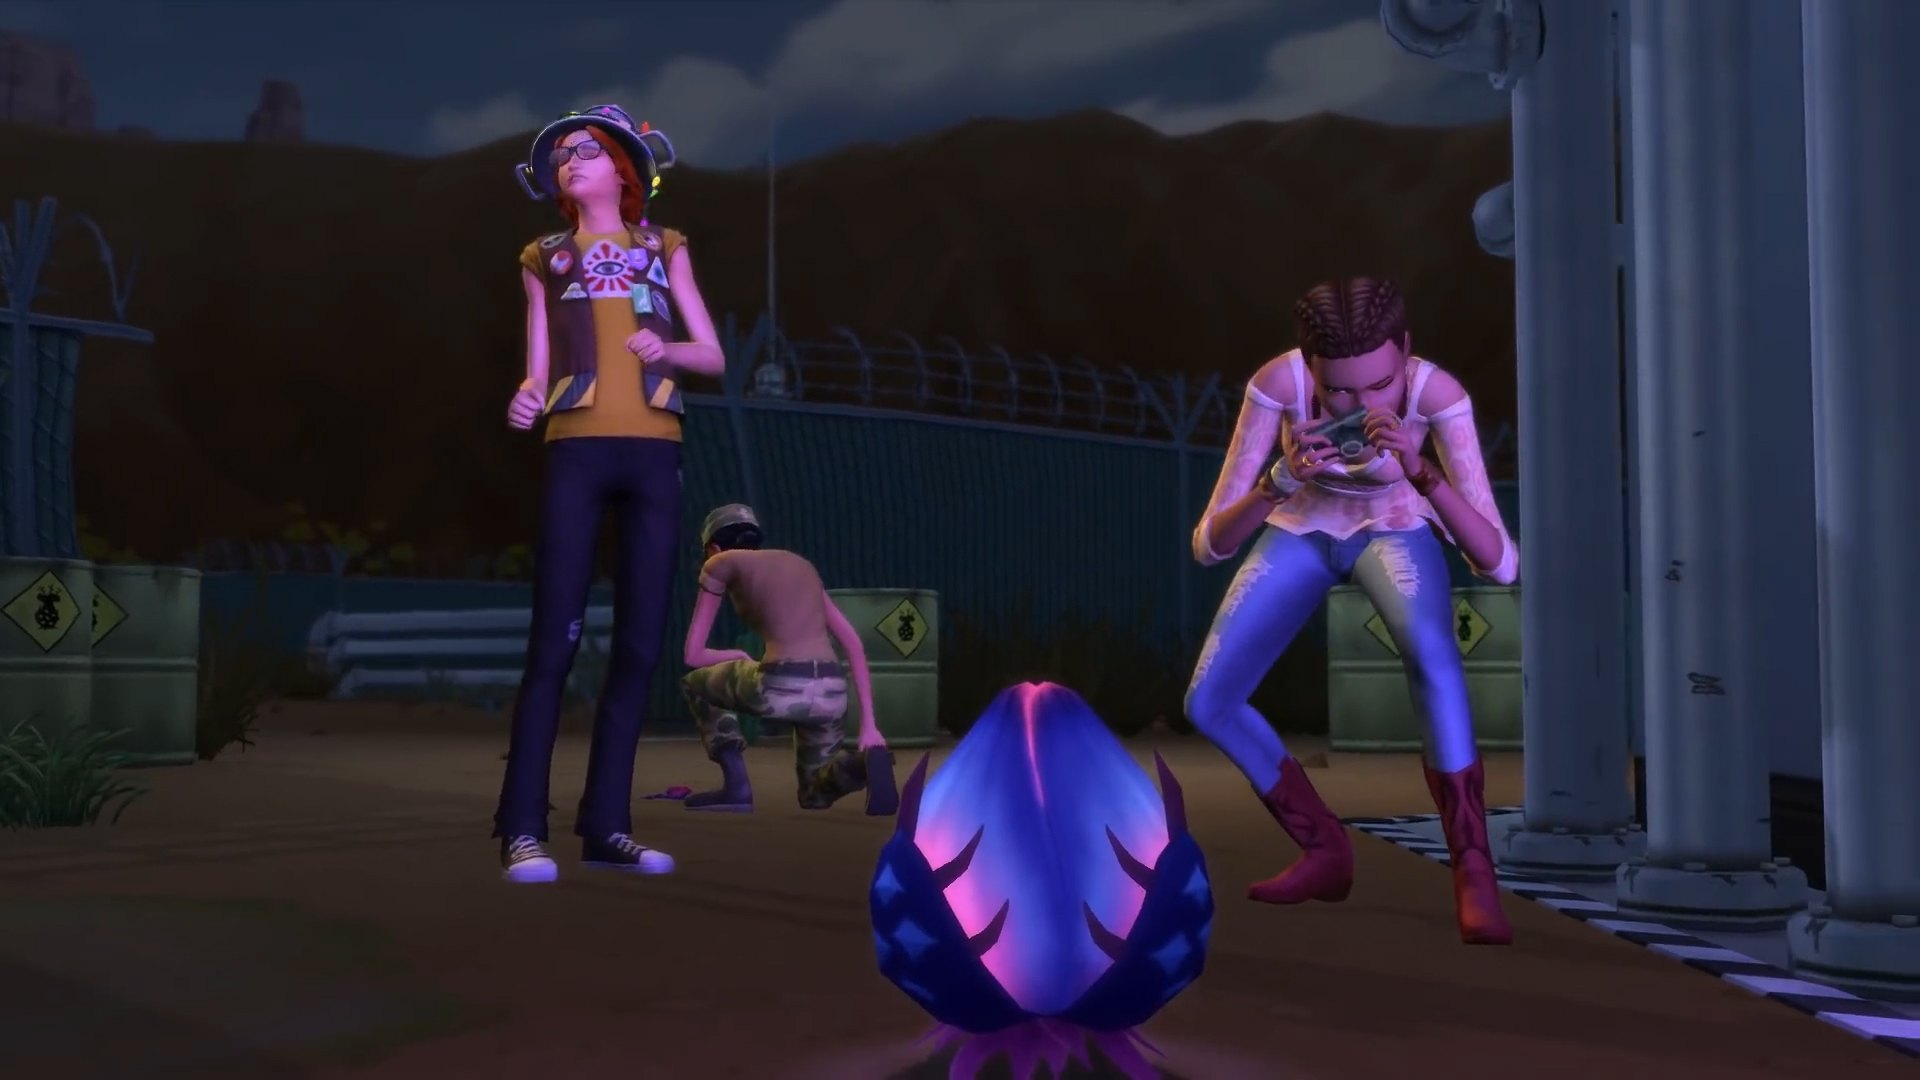 The Sims 4 Strangerville - Alien Goop being investigated